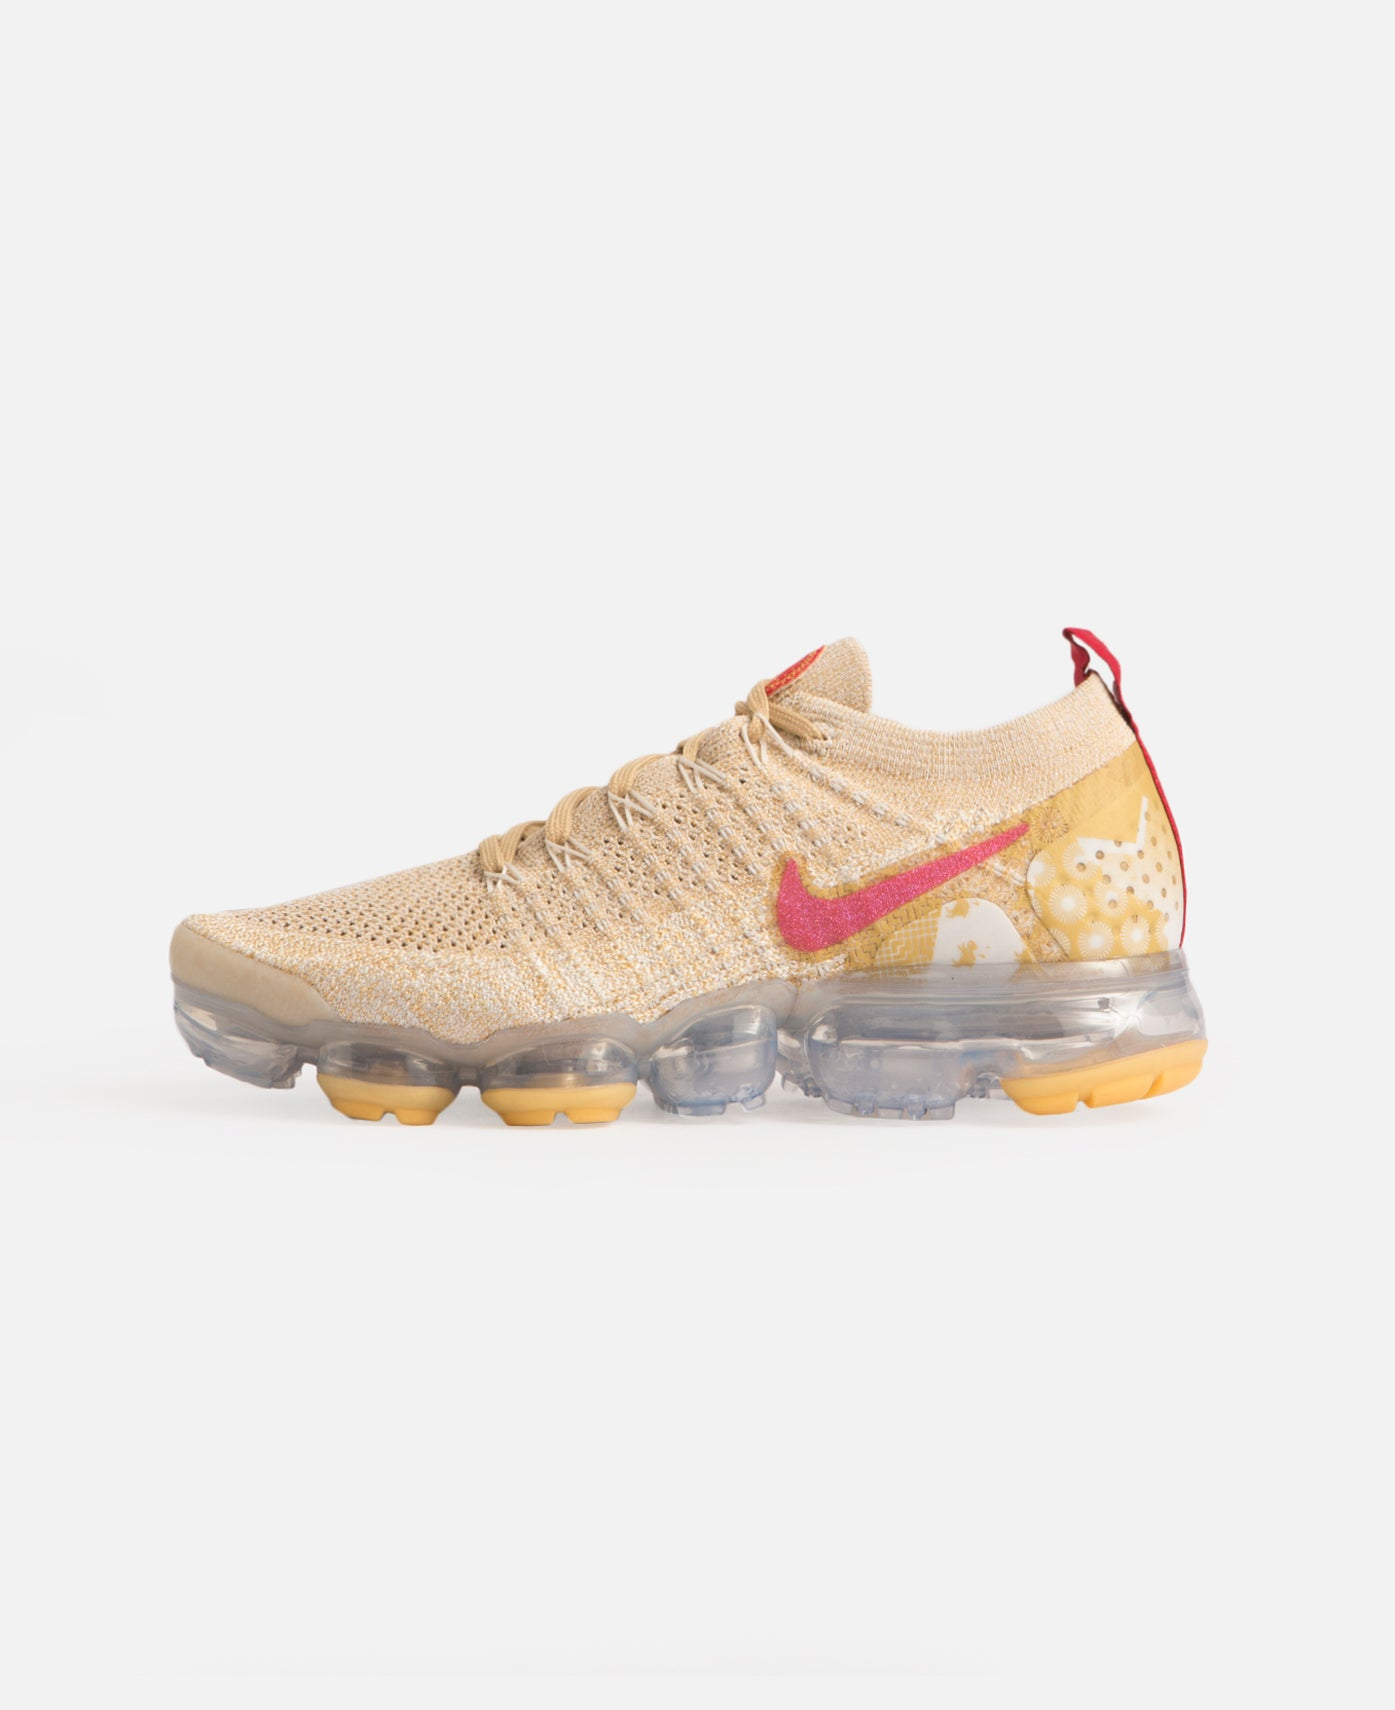 cb97bf240a318 W Nike Air Vapormax Flyknit 2 CNY – JUICESTORE